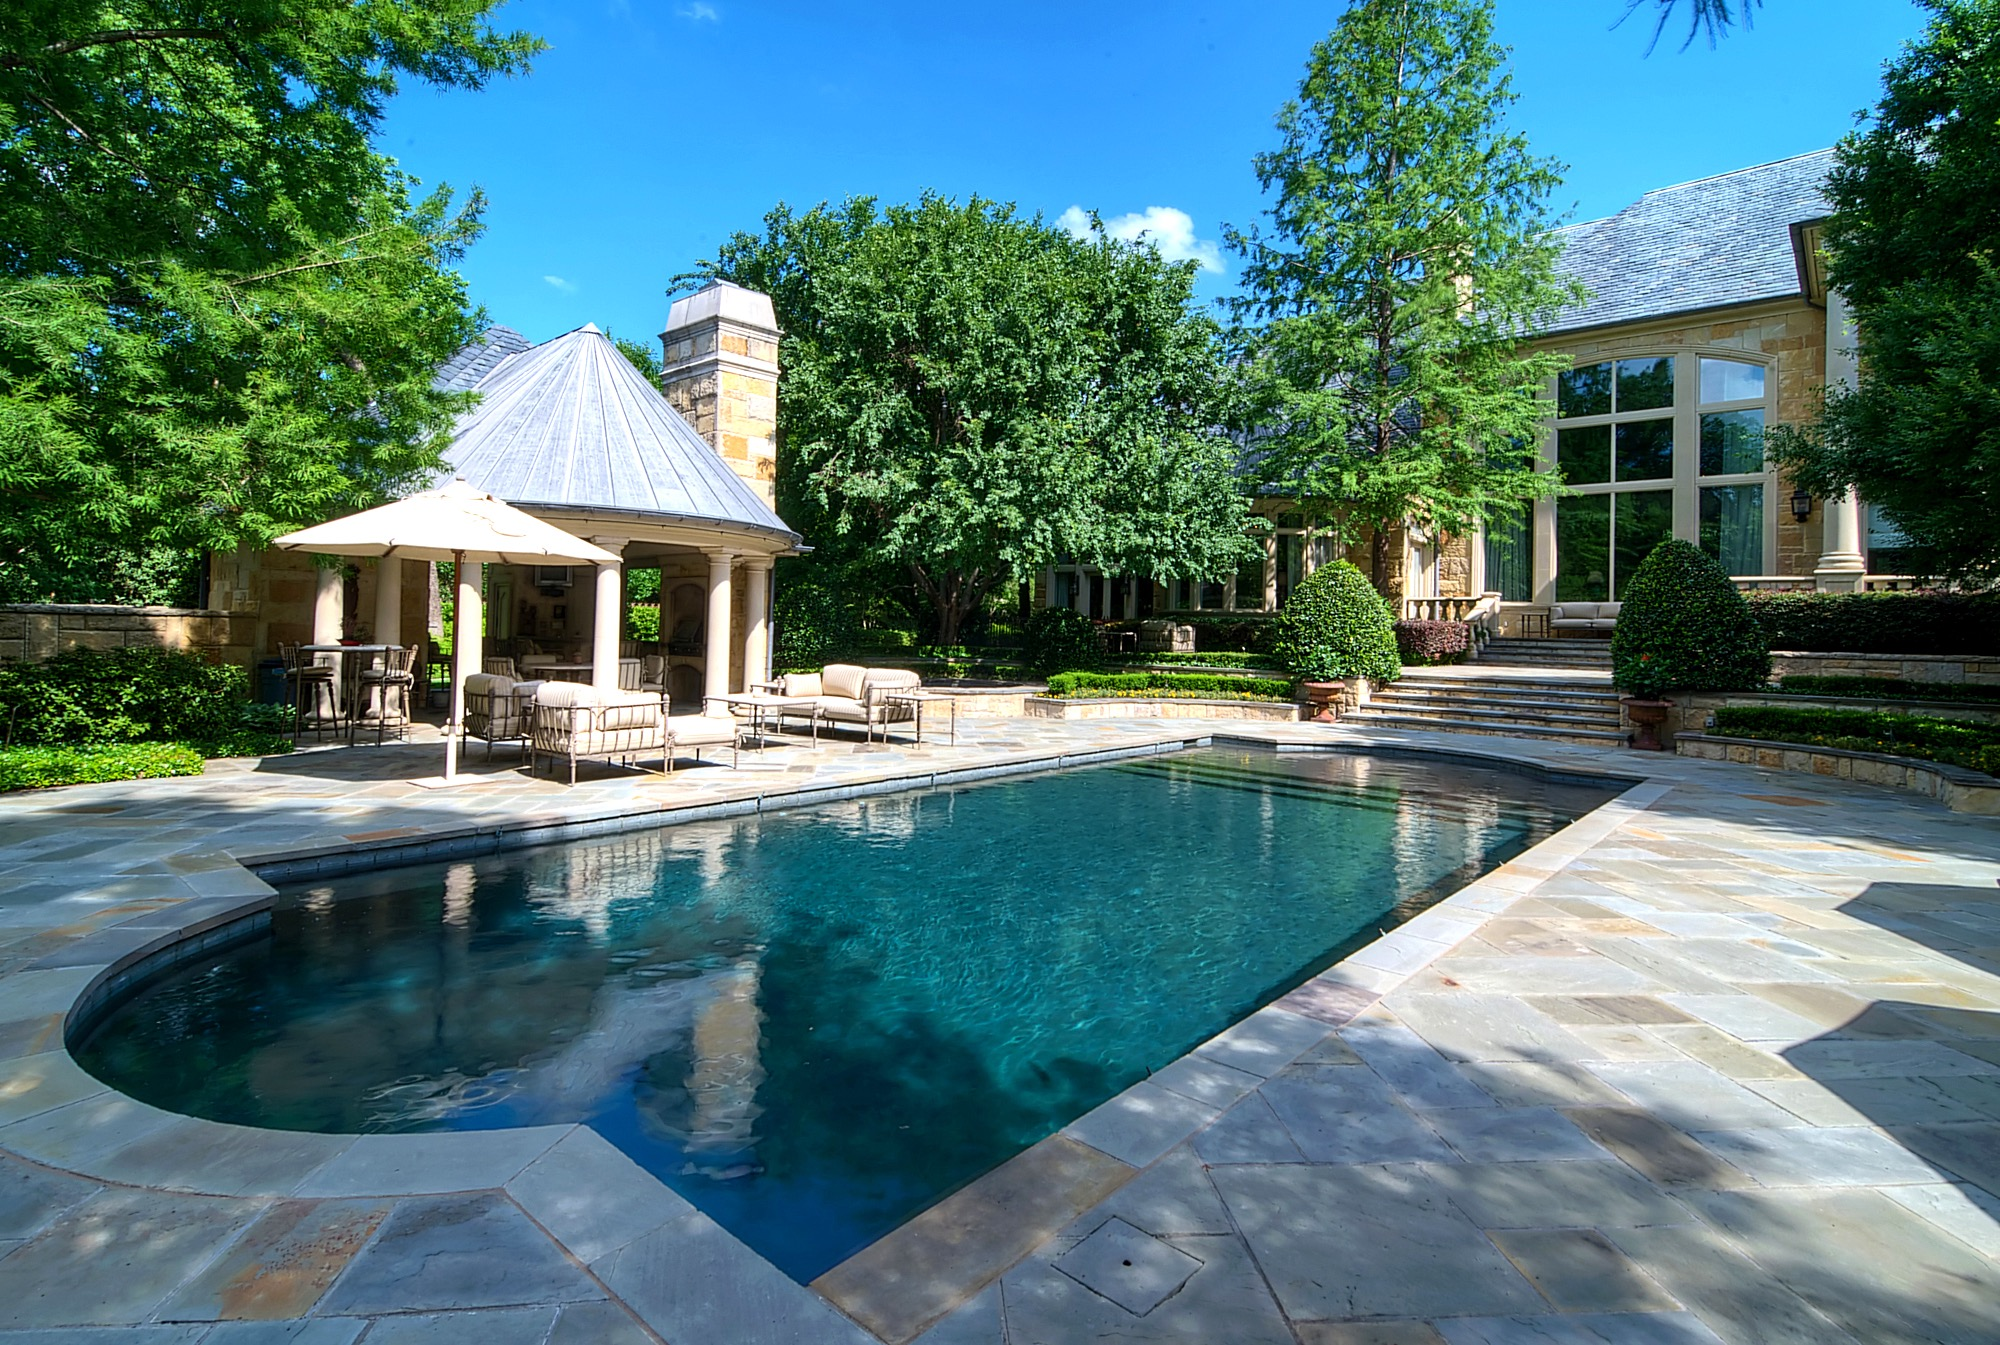 Modern Backyard And Swimming Pool Landscape (Image 17 of 30)